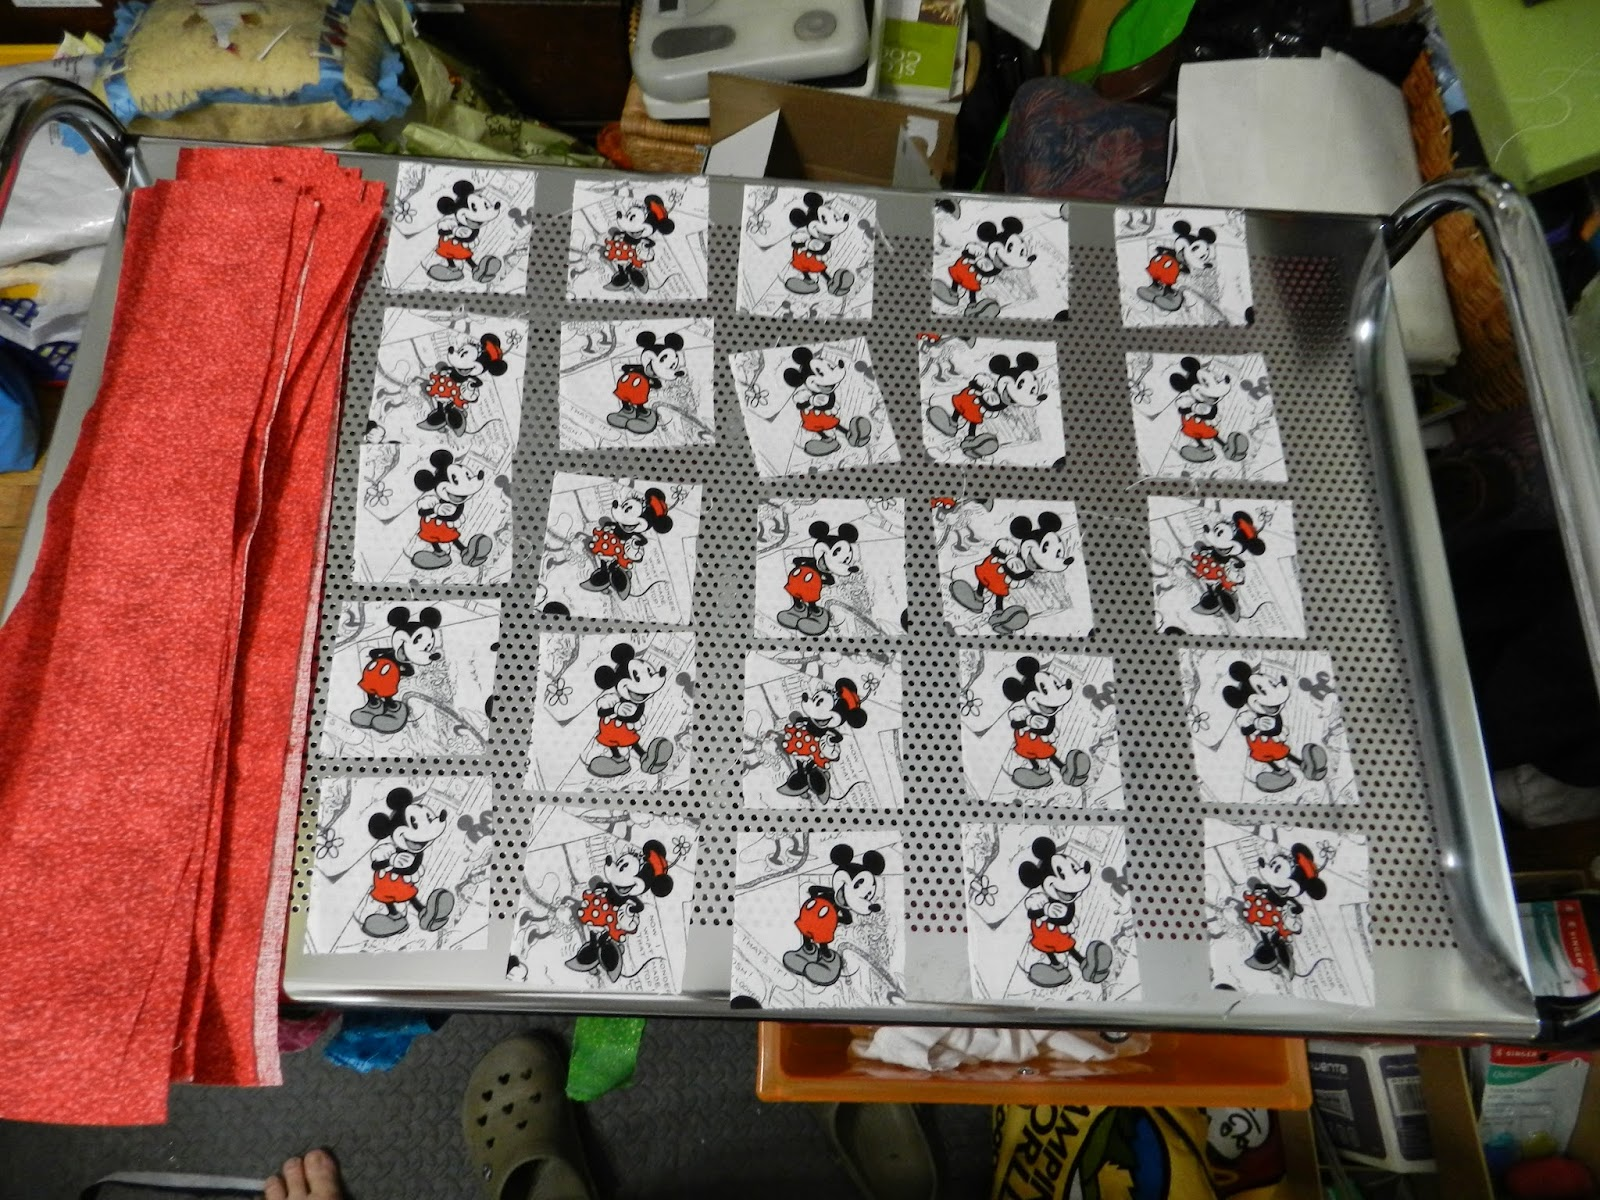 Dinah S Quilts And Embroidery Disney T Shirt Quilt